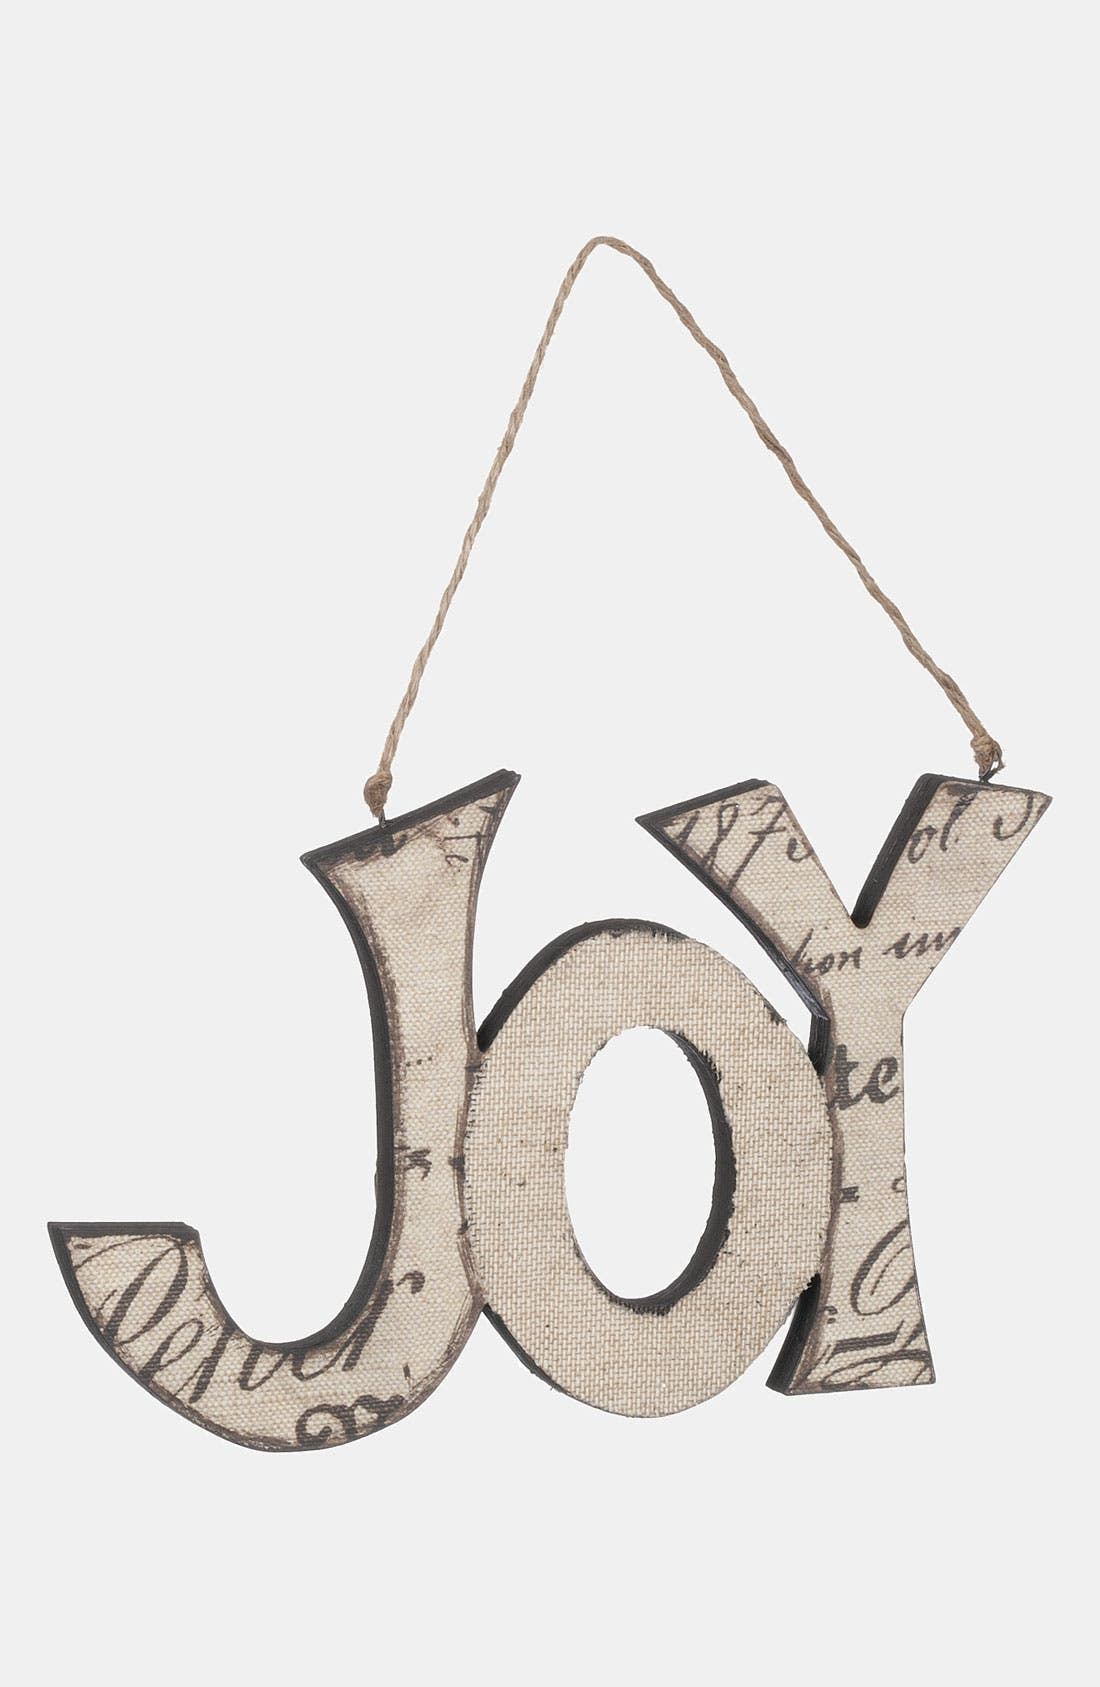 Alternate Image 1 Selected - Sullivans 'Joy' Ornament